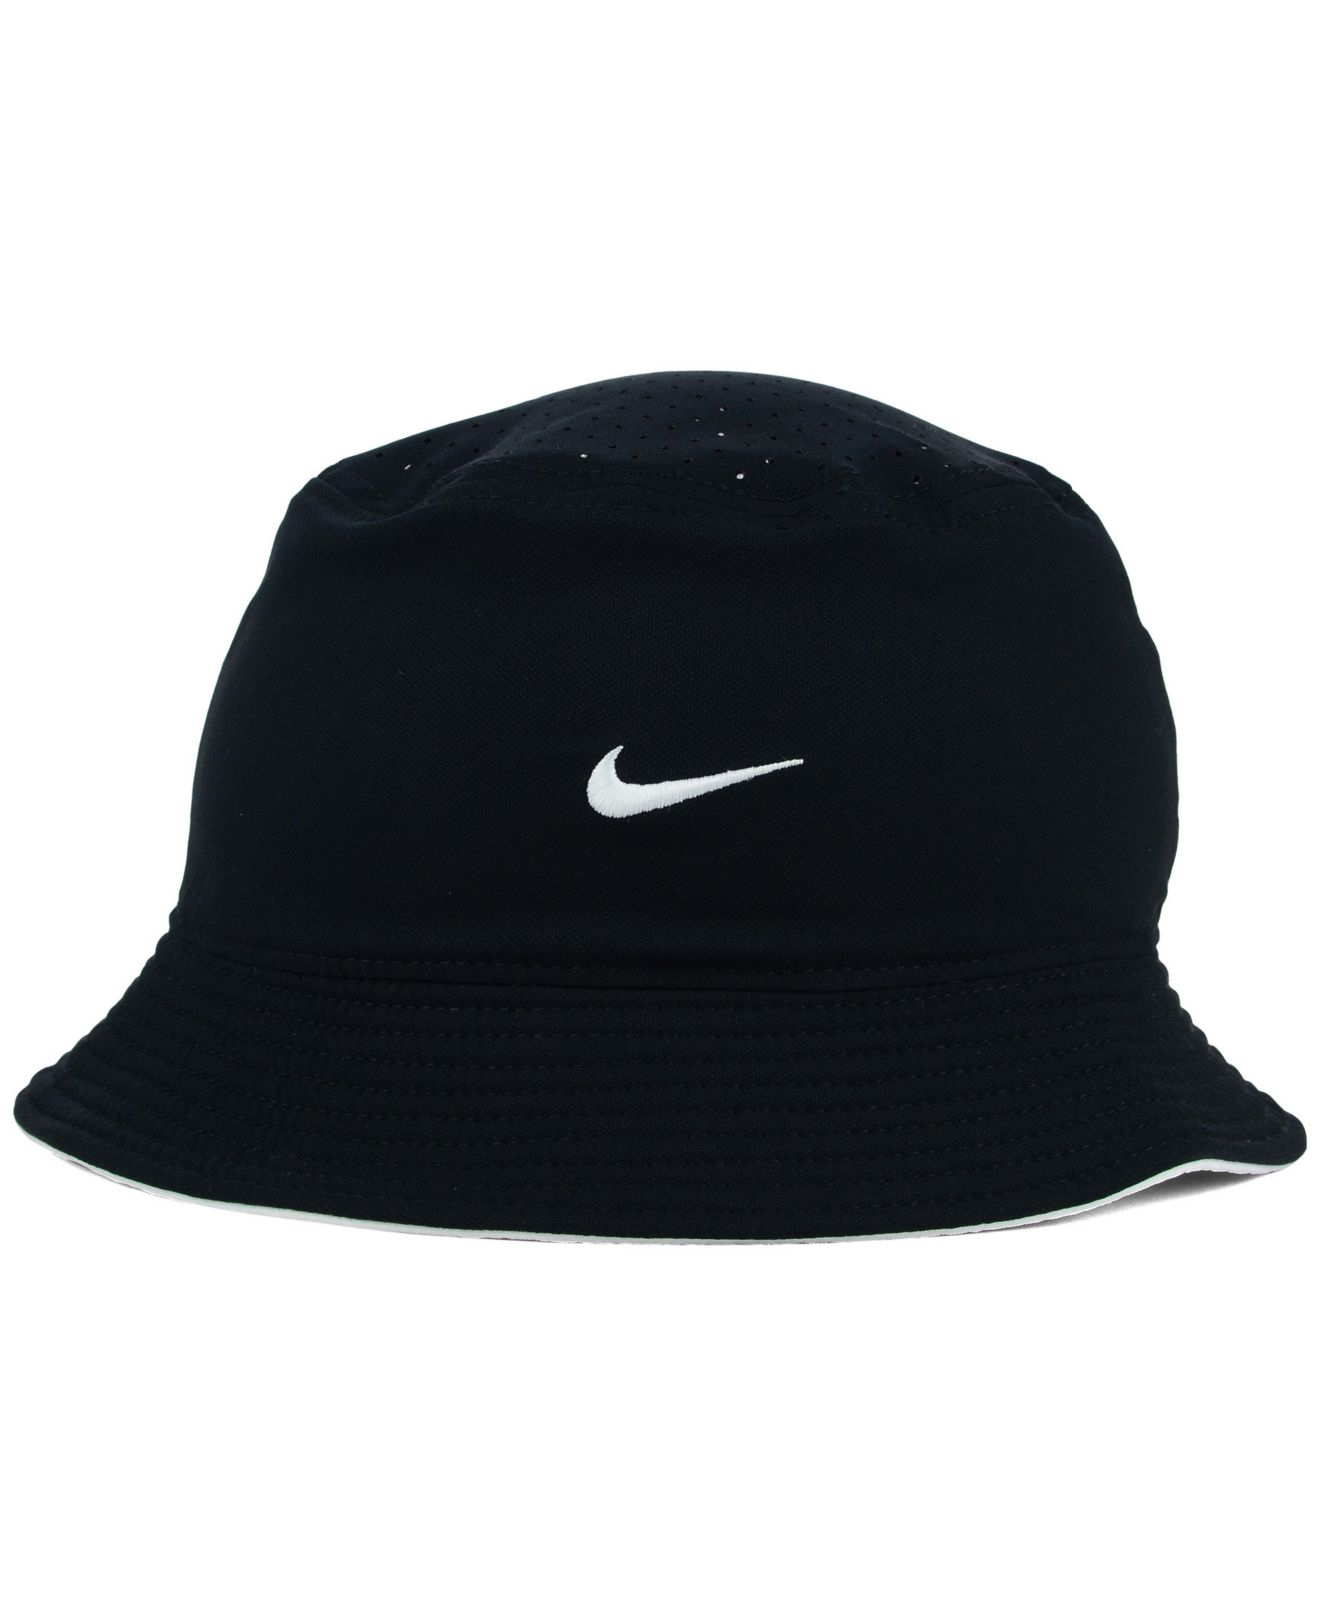 White Nike Bucket Hat